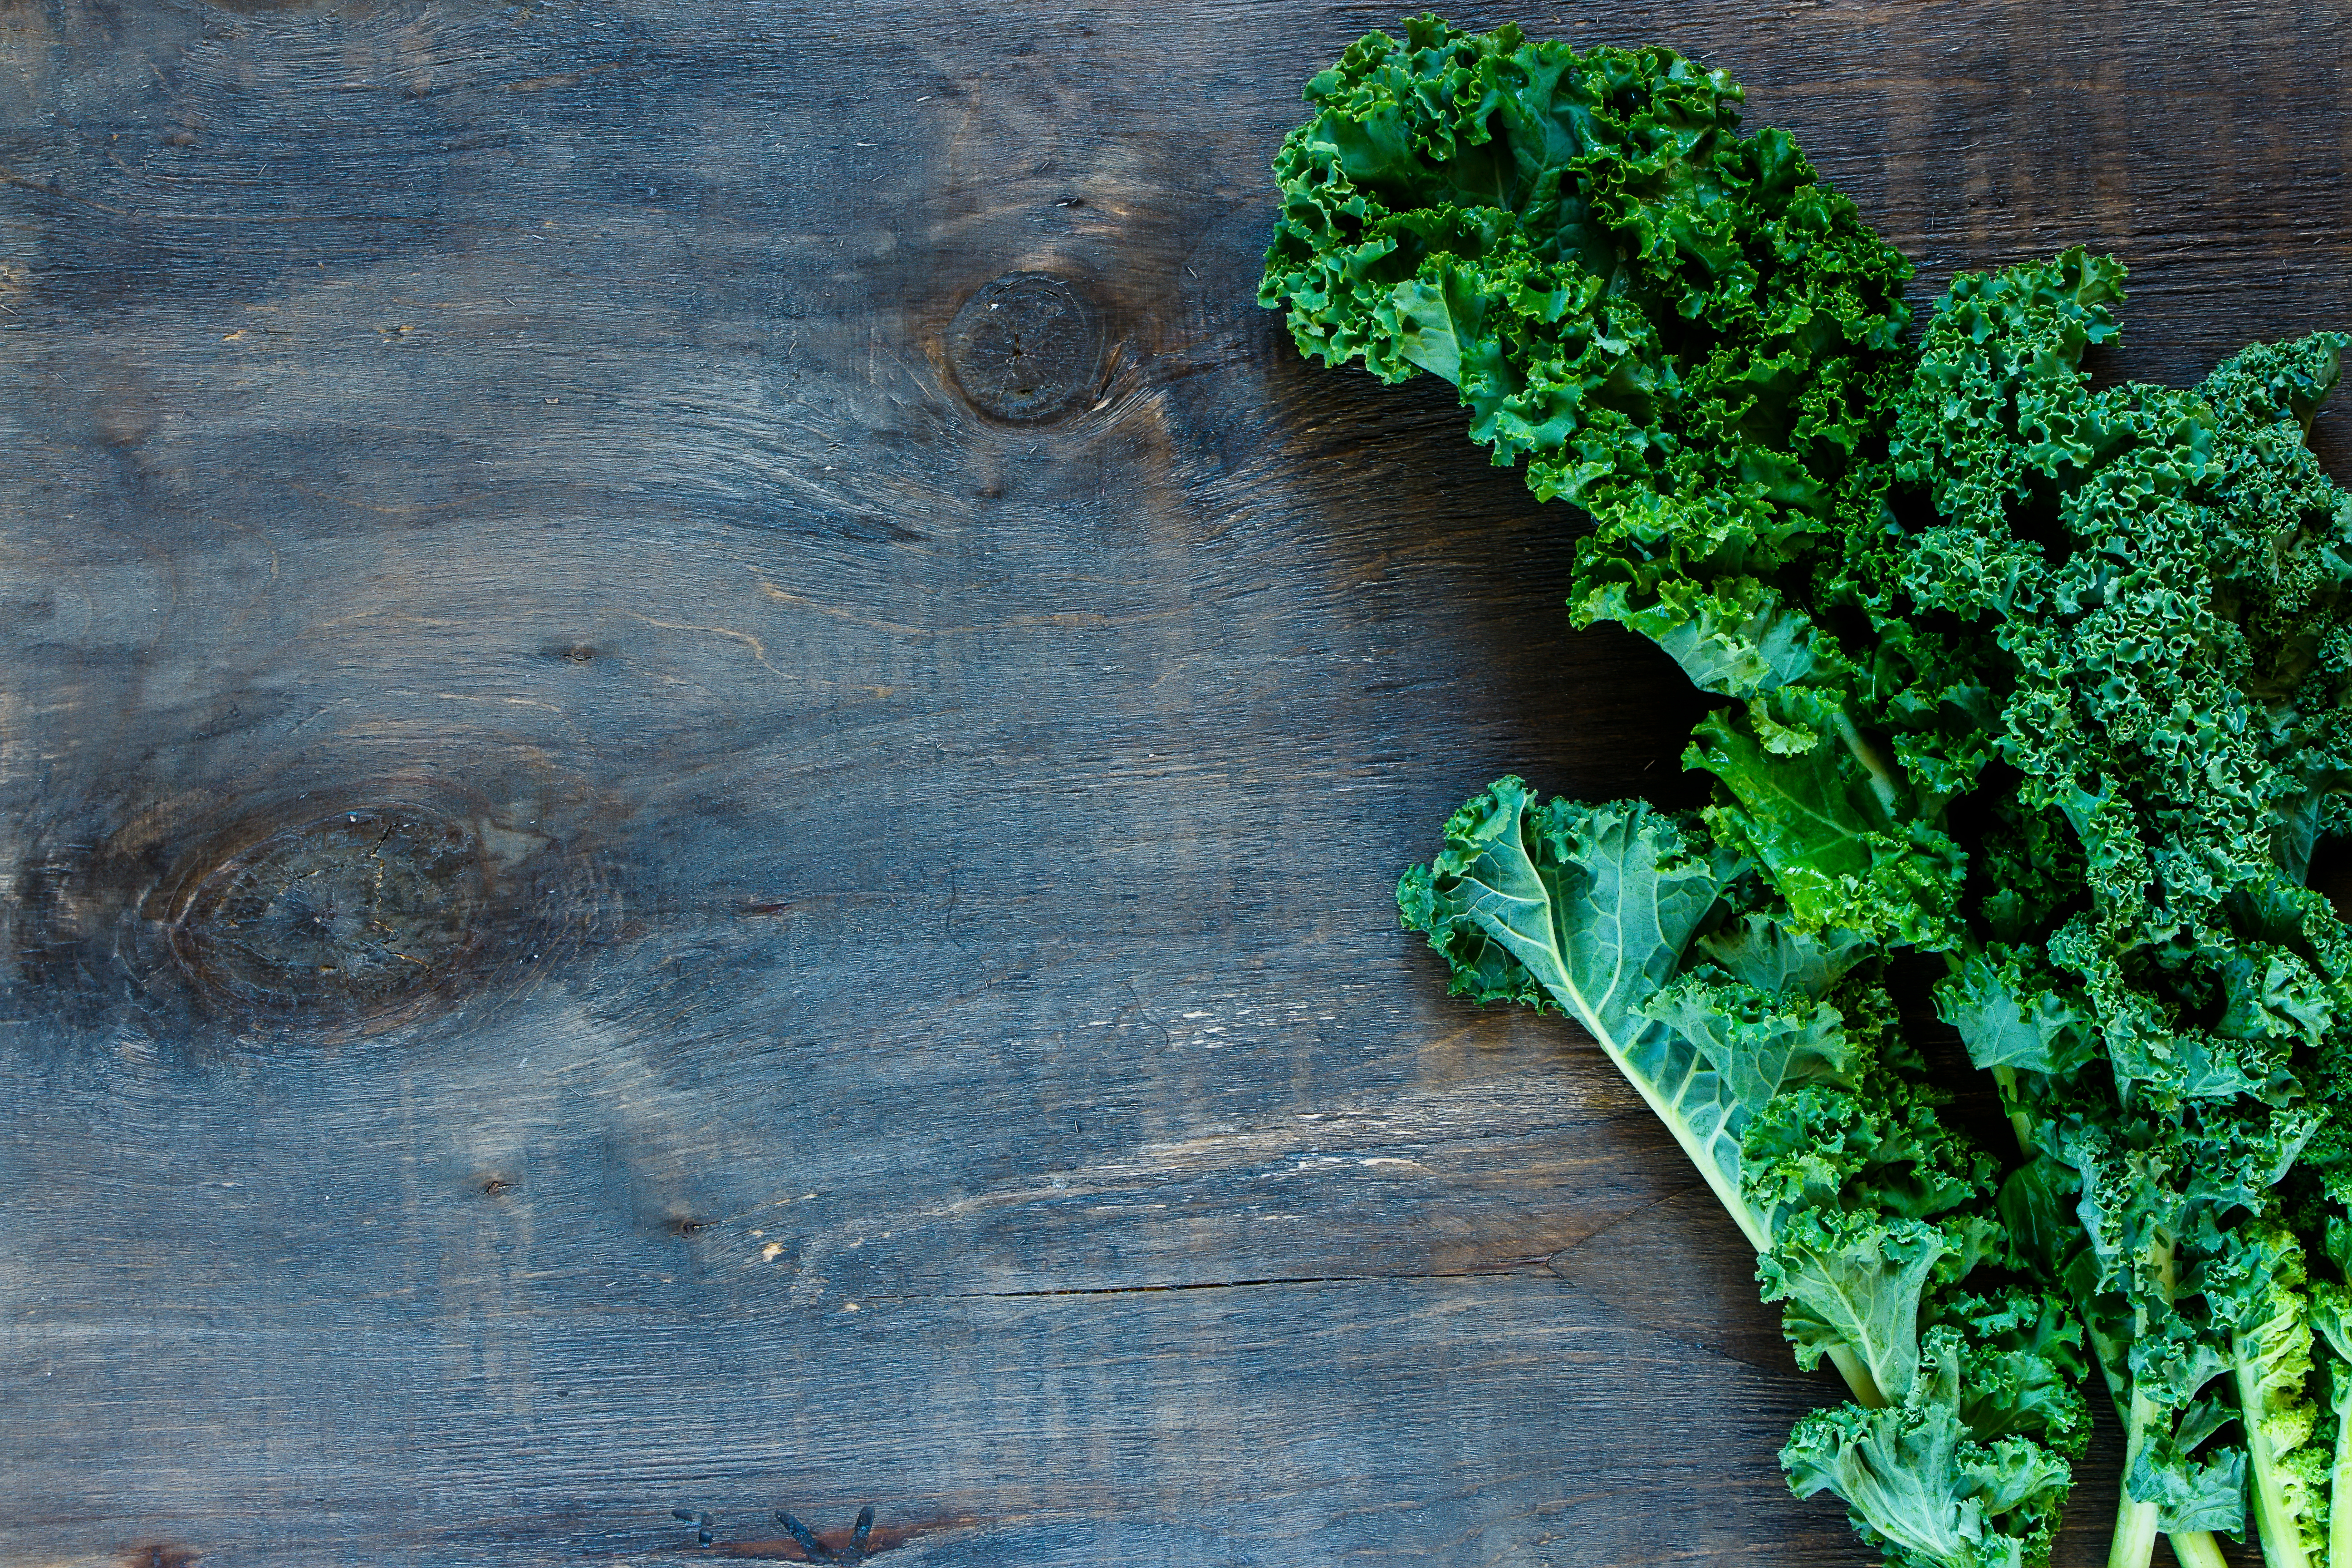 Top view of fresh green curly kale on rustic wooden background with space for text.